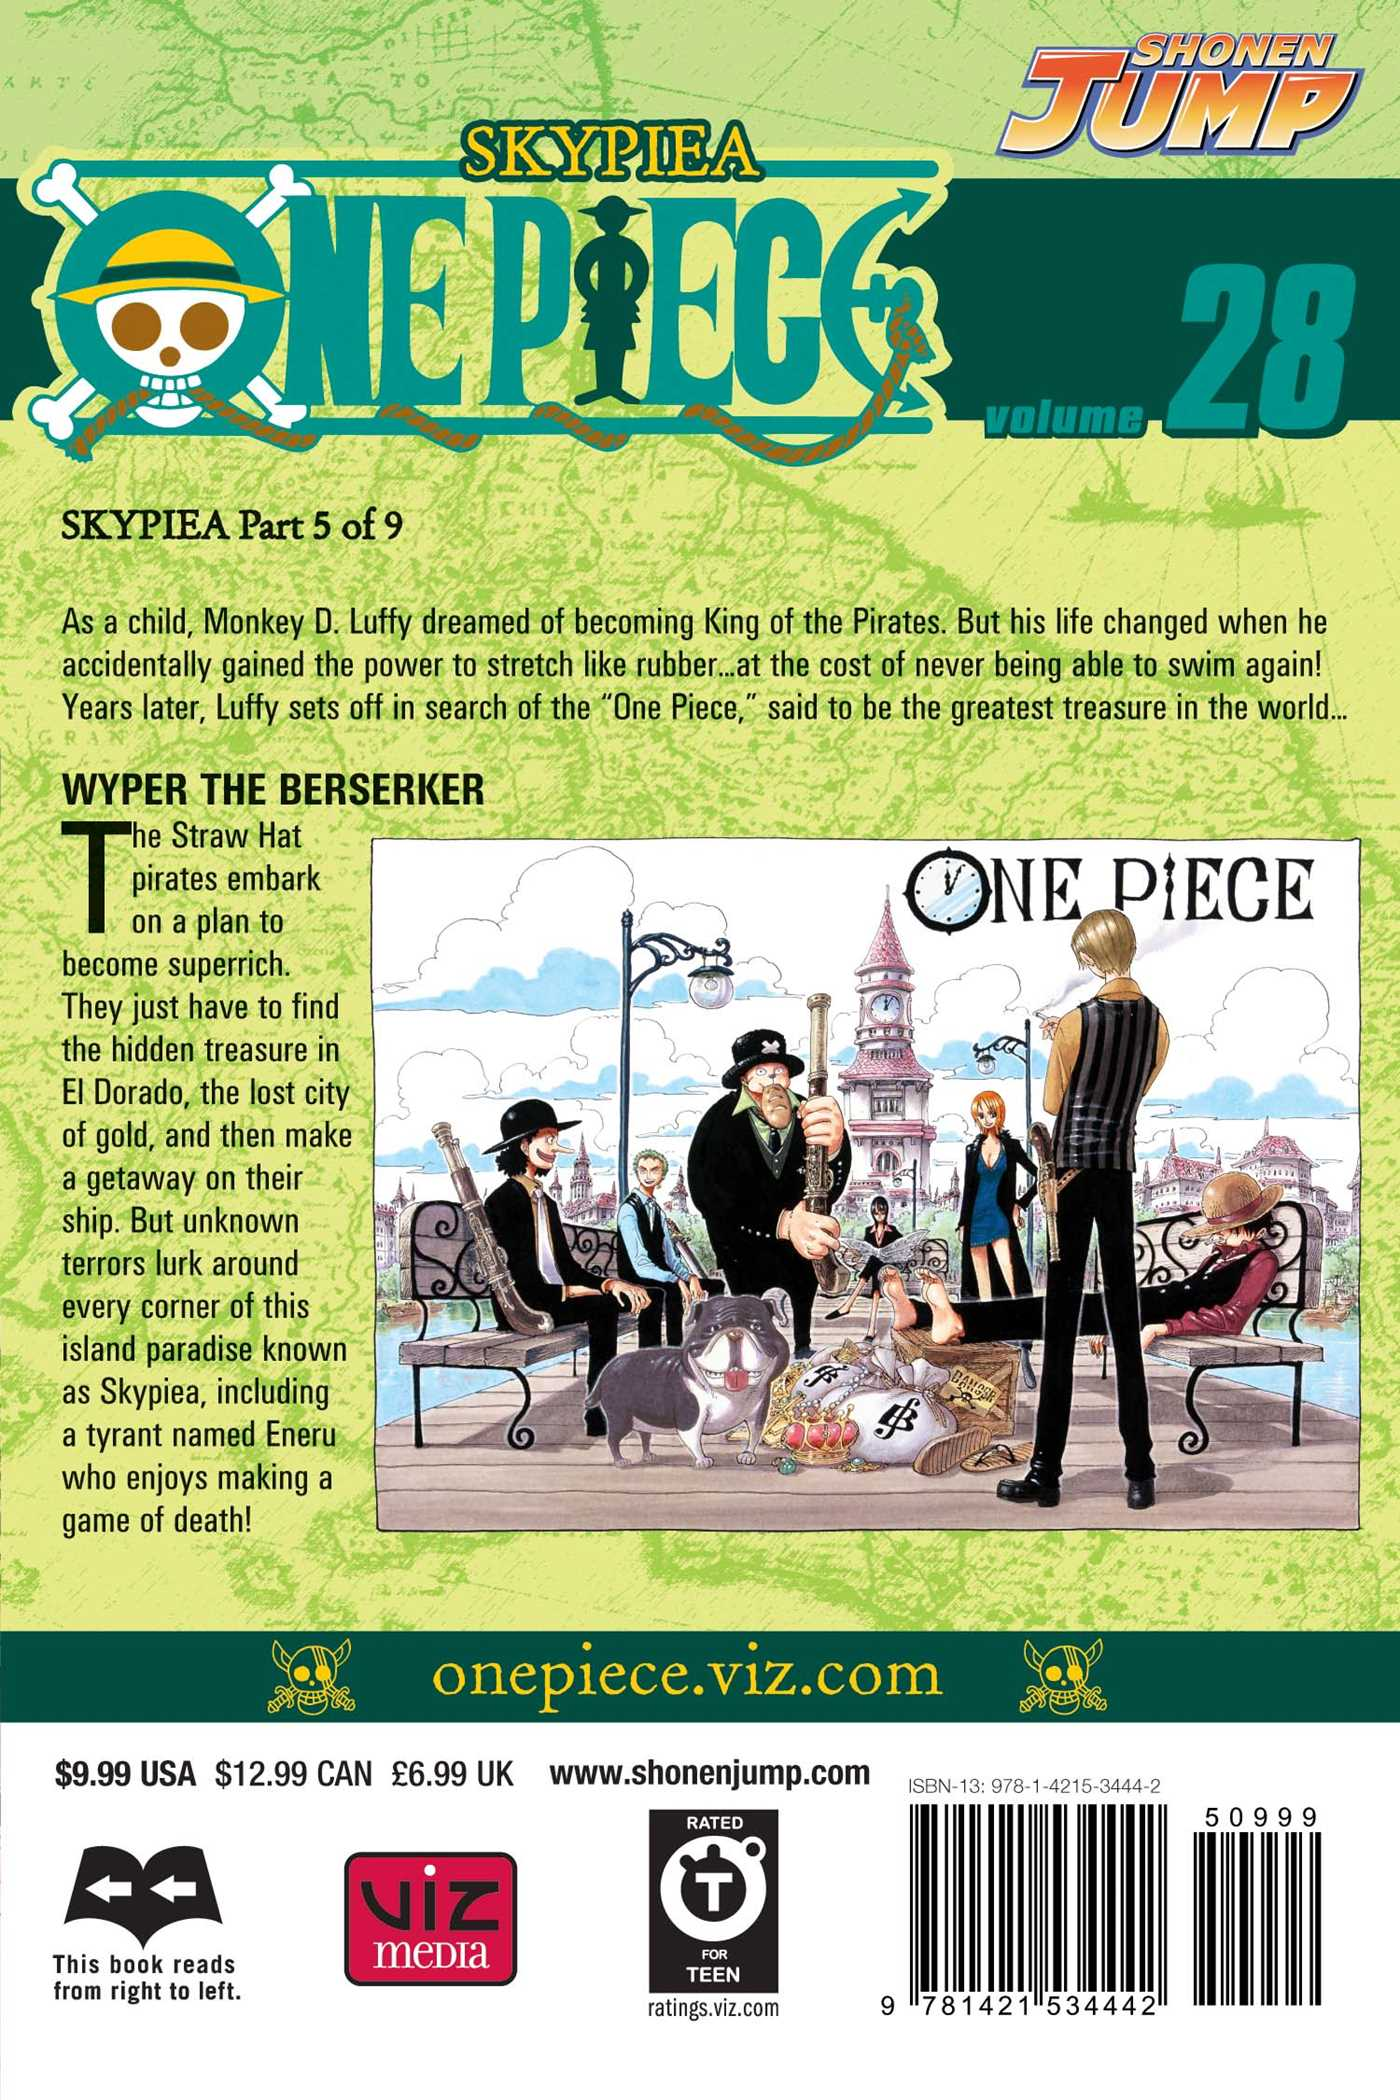 One piece vol 28 9781421534442 hr back